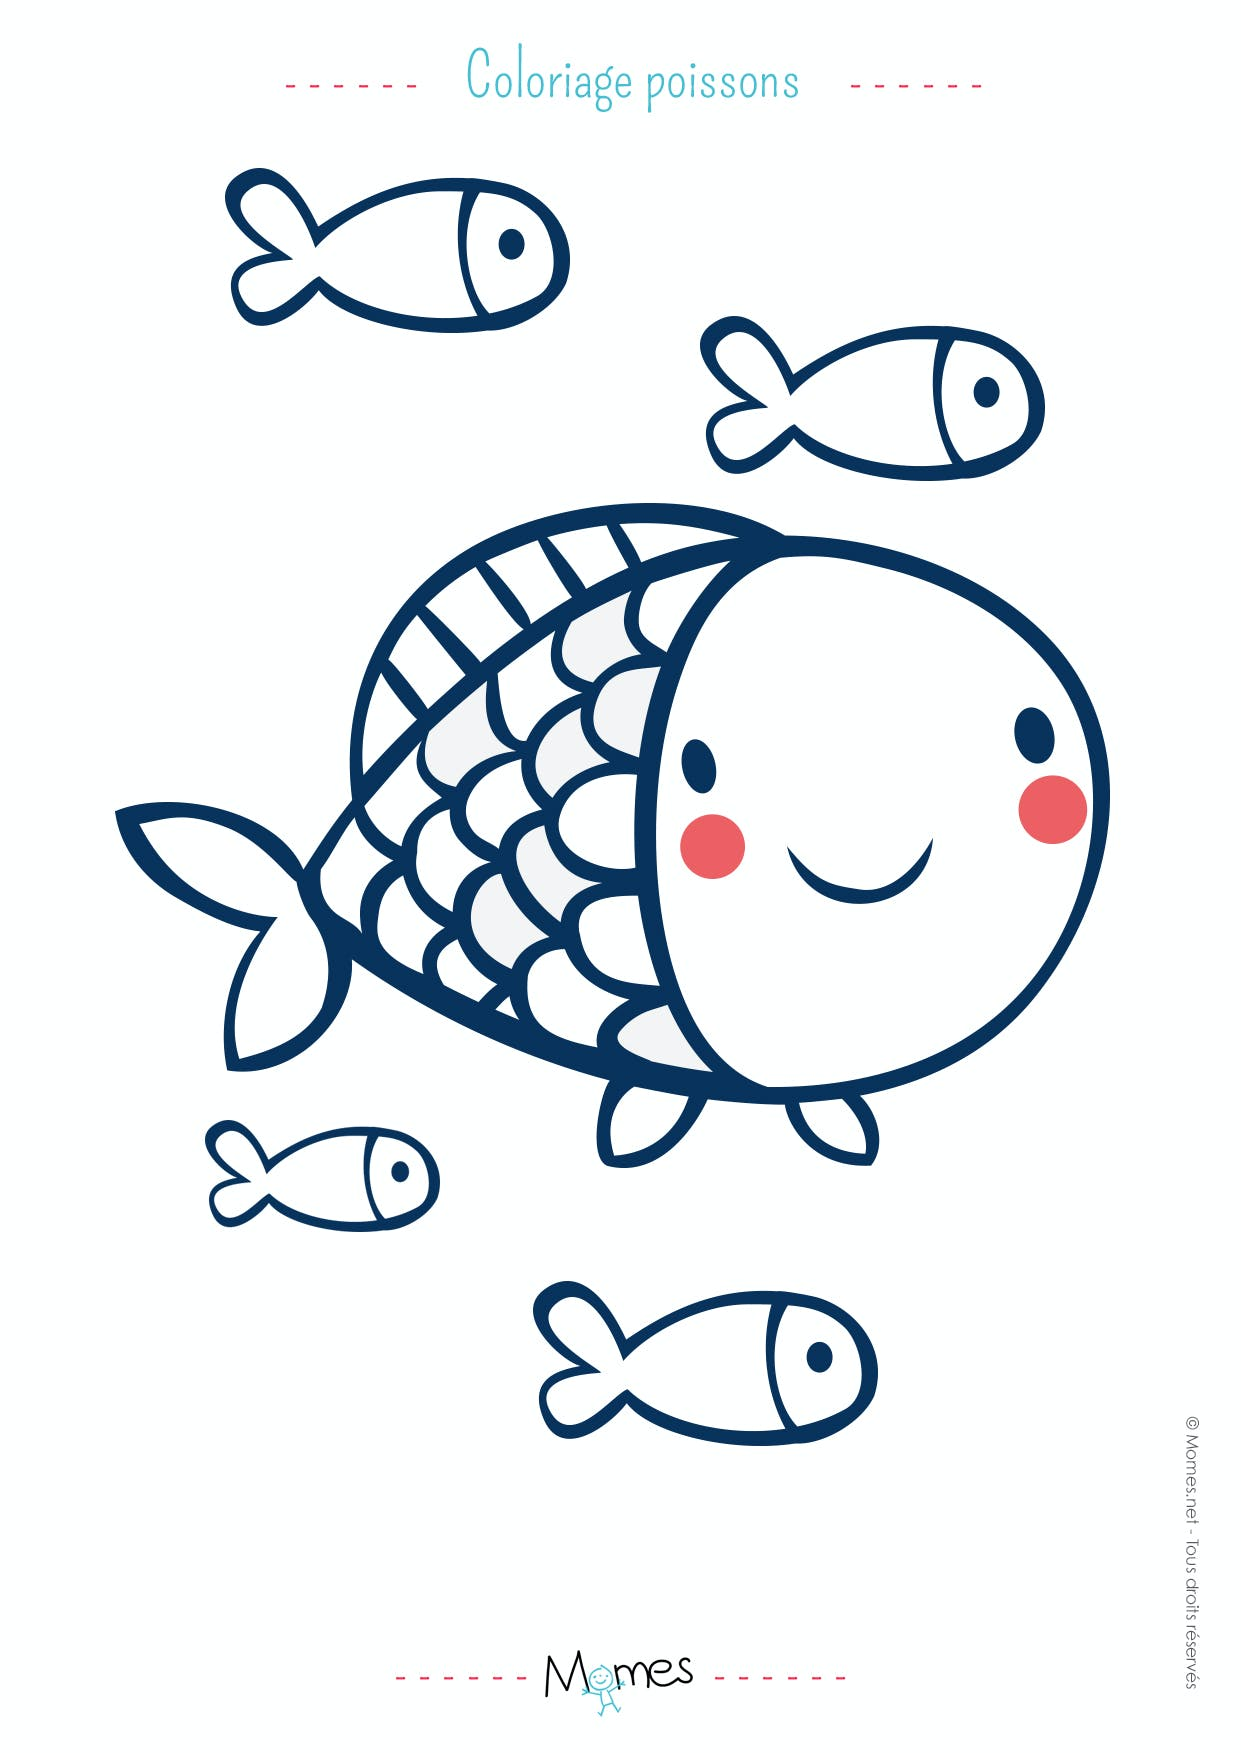 Coloriage poisson d 39 avril - Dessin de poisson d avril ...